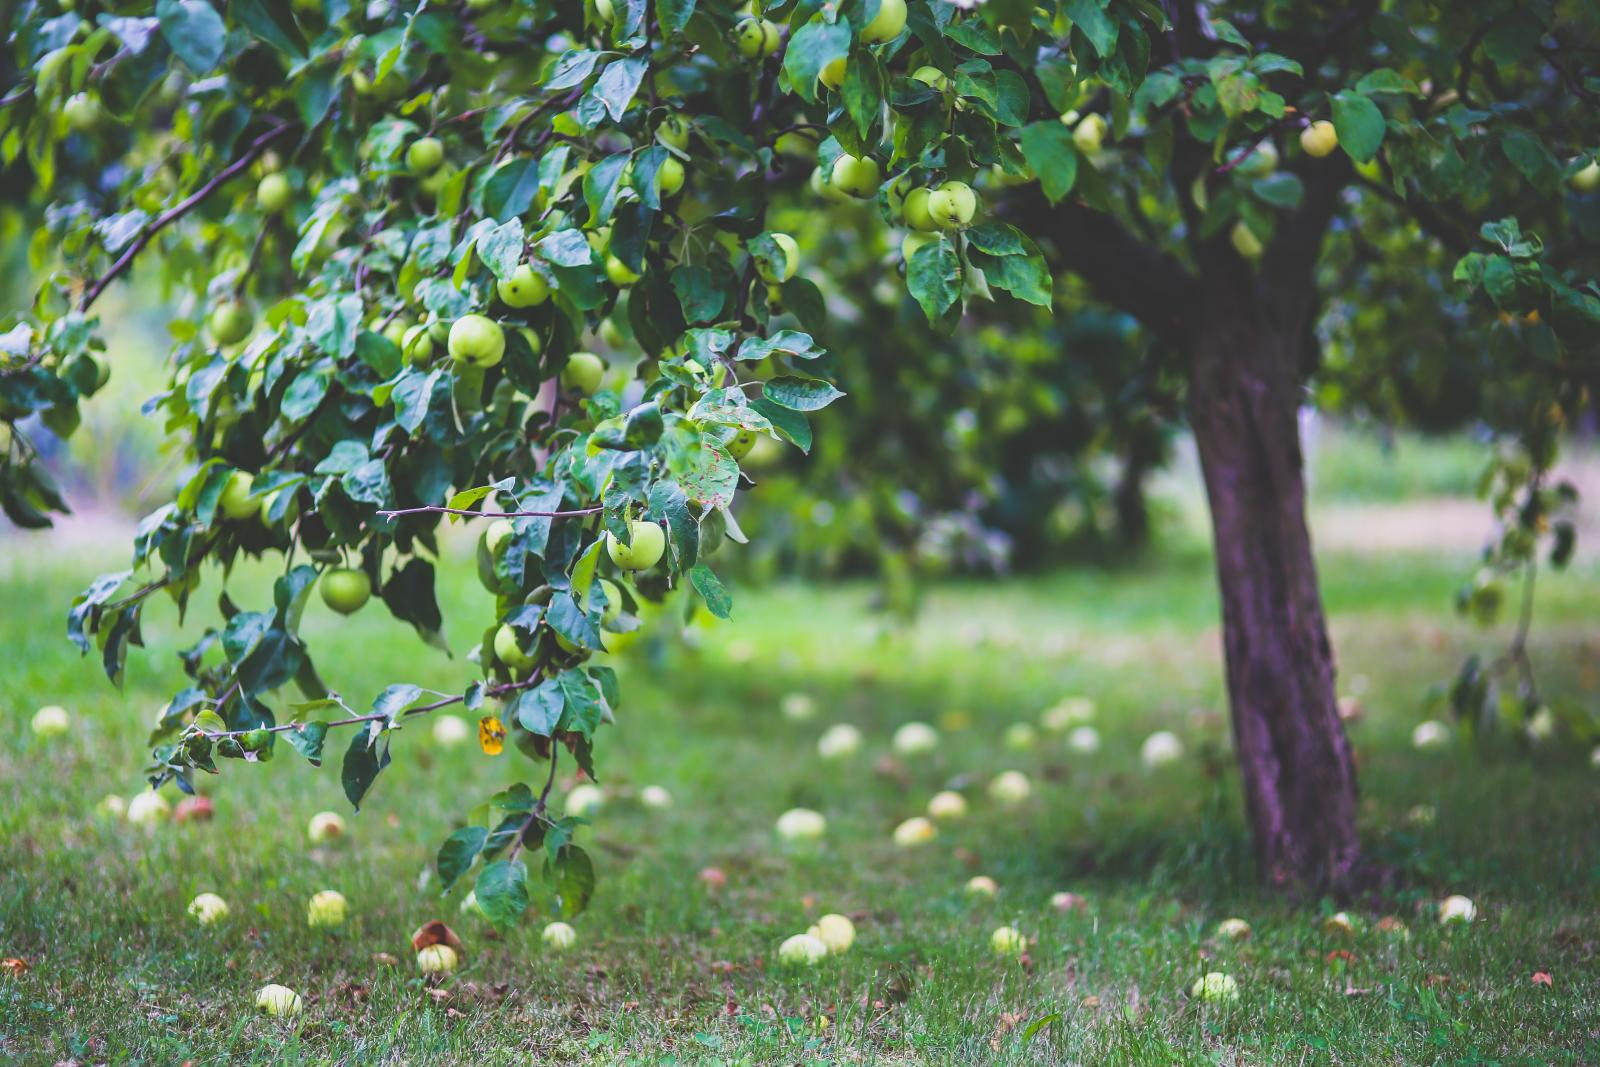 Apple tree. Photo credit: Pexels